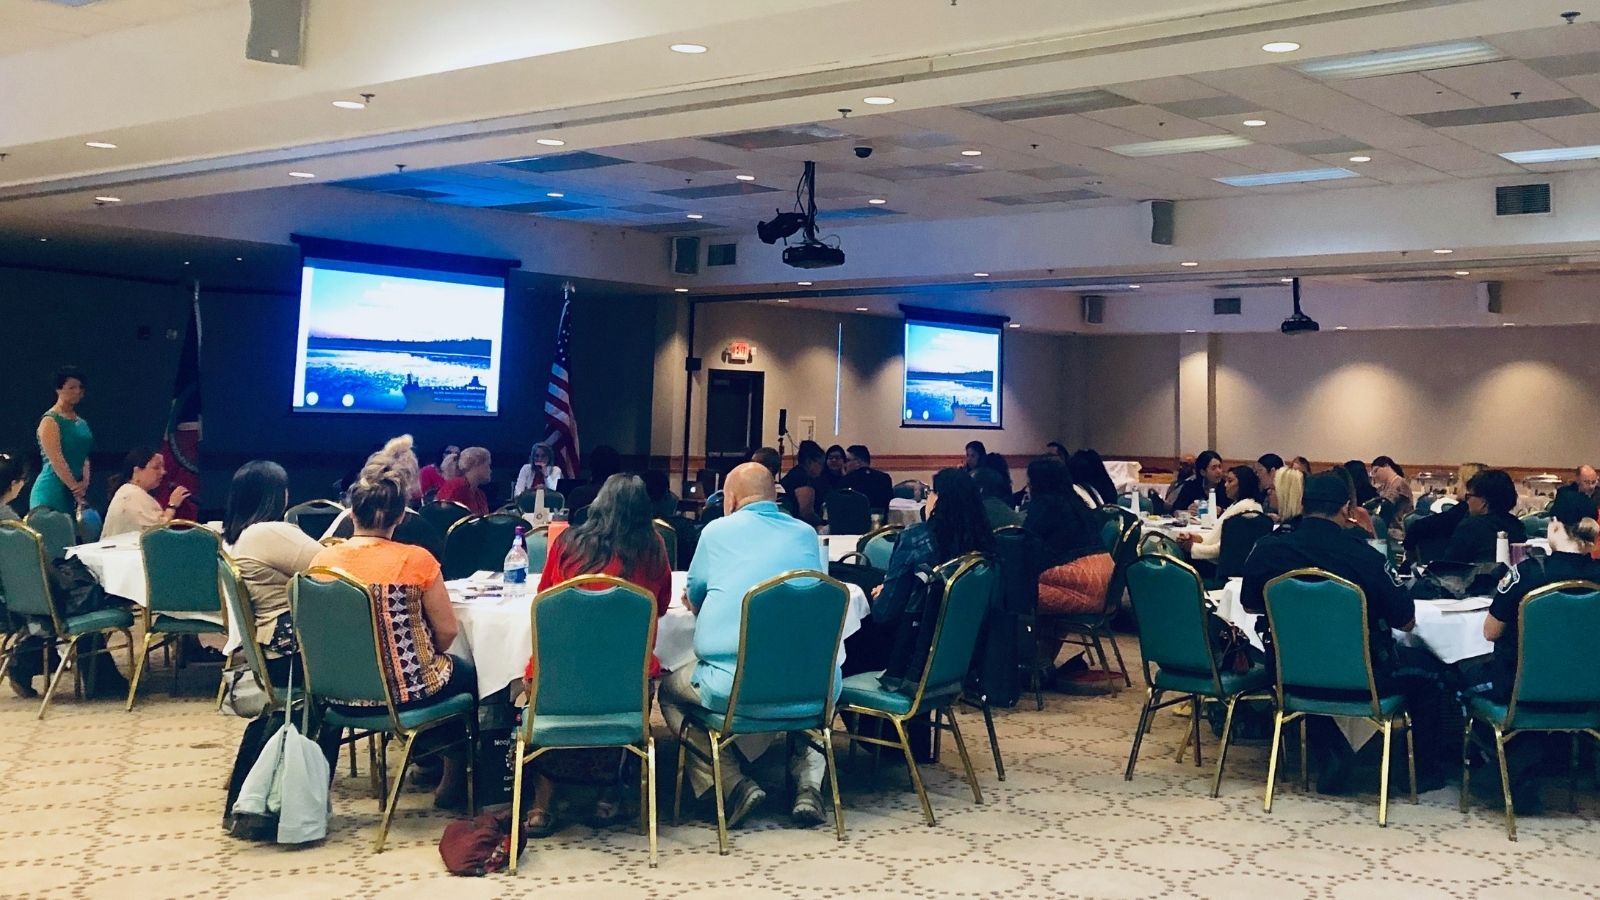 Group of advocates and tribal leaders seated at tables participating in Bay Mills Indian Community training watching presentation on screen.